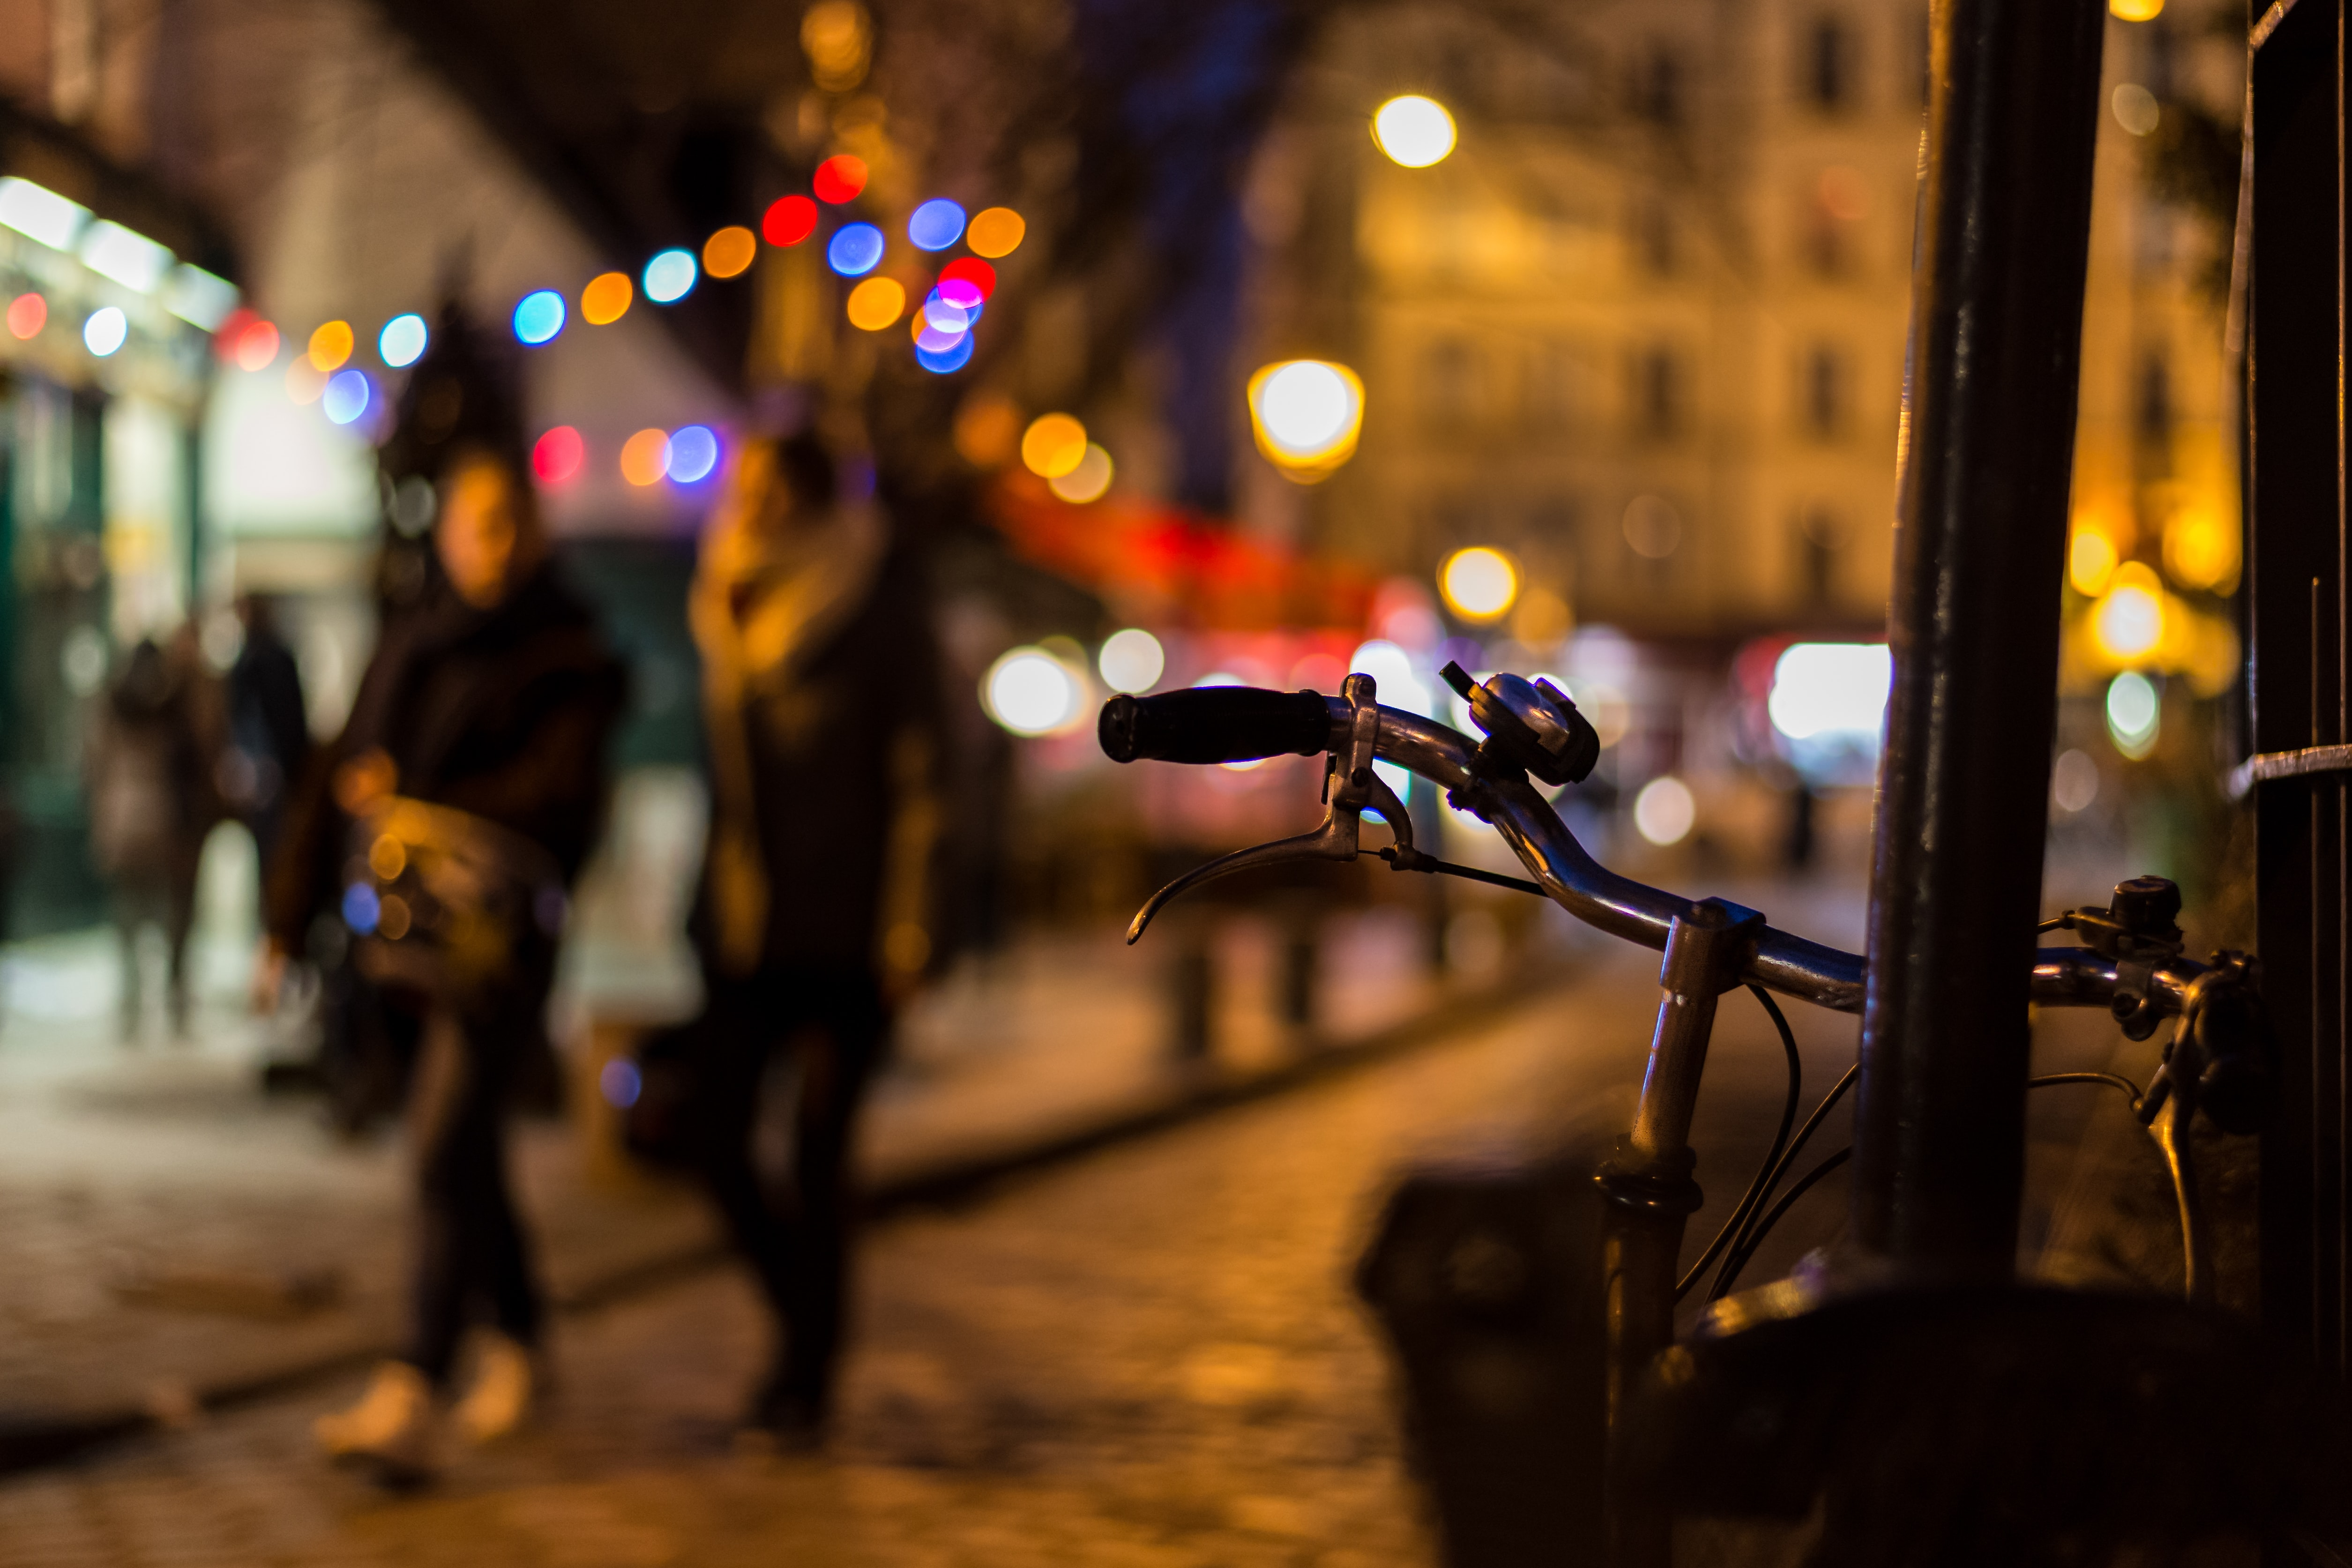 A bike and bell in focus with blurred people and a bokeh effect in the background